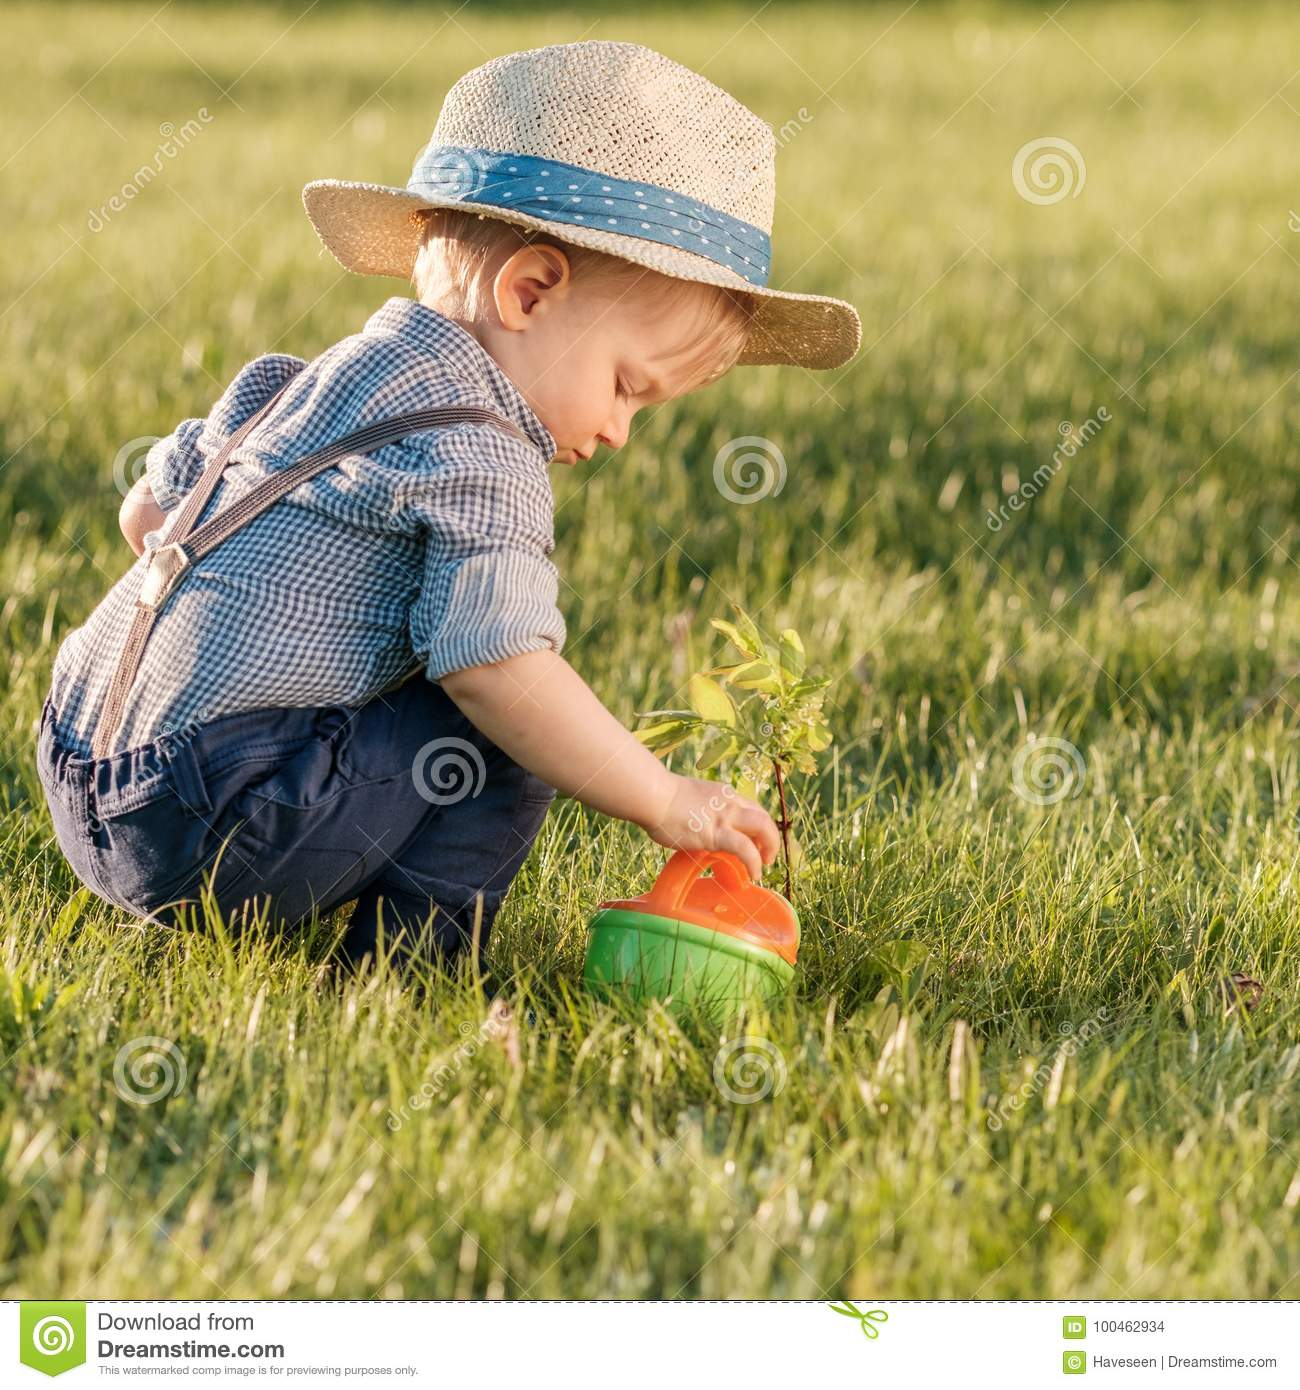 Rural scene with one year old baby boy wearing straw hat using watering can 252088ef9af